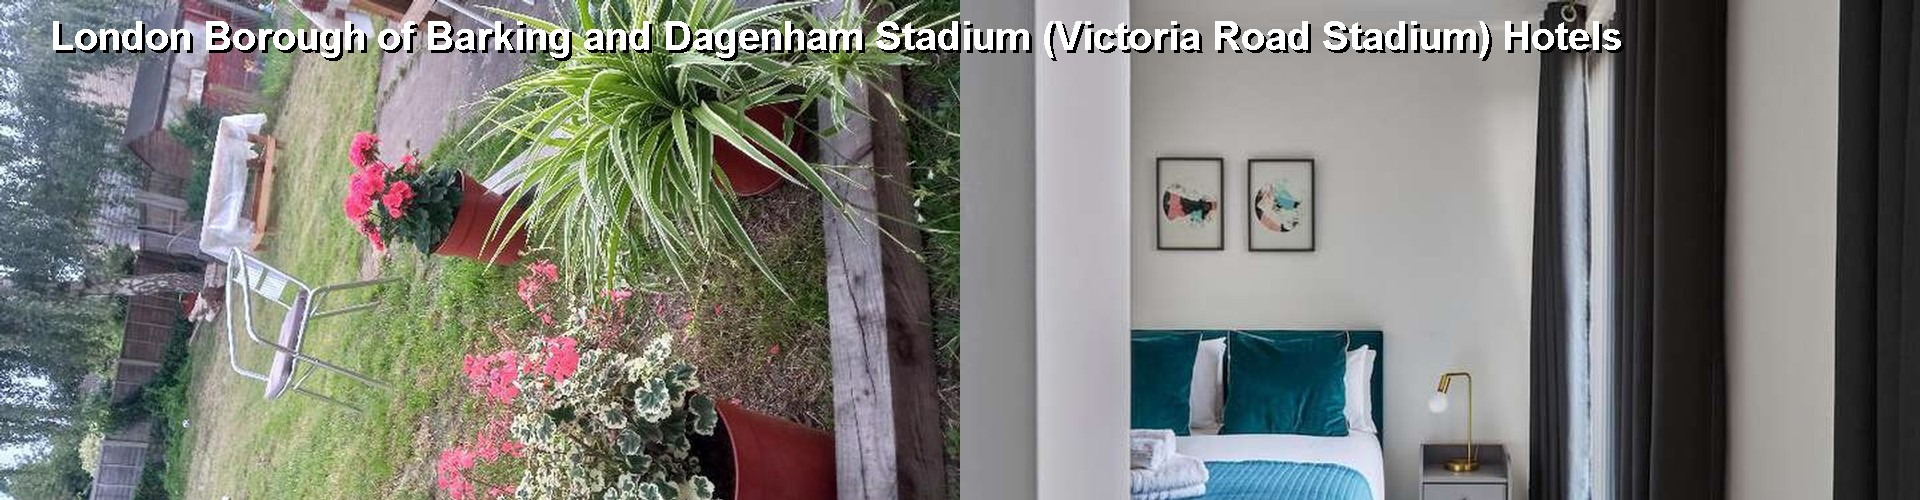 4 Best Hotels near London Borough of Barking and Dagenham Stadium (Victoria Road Stadium)